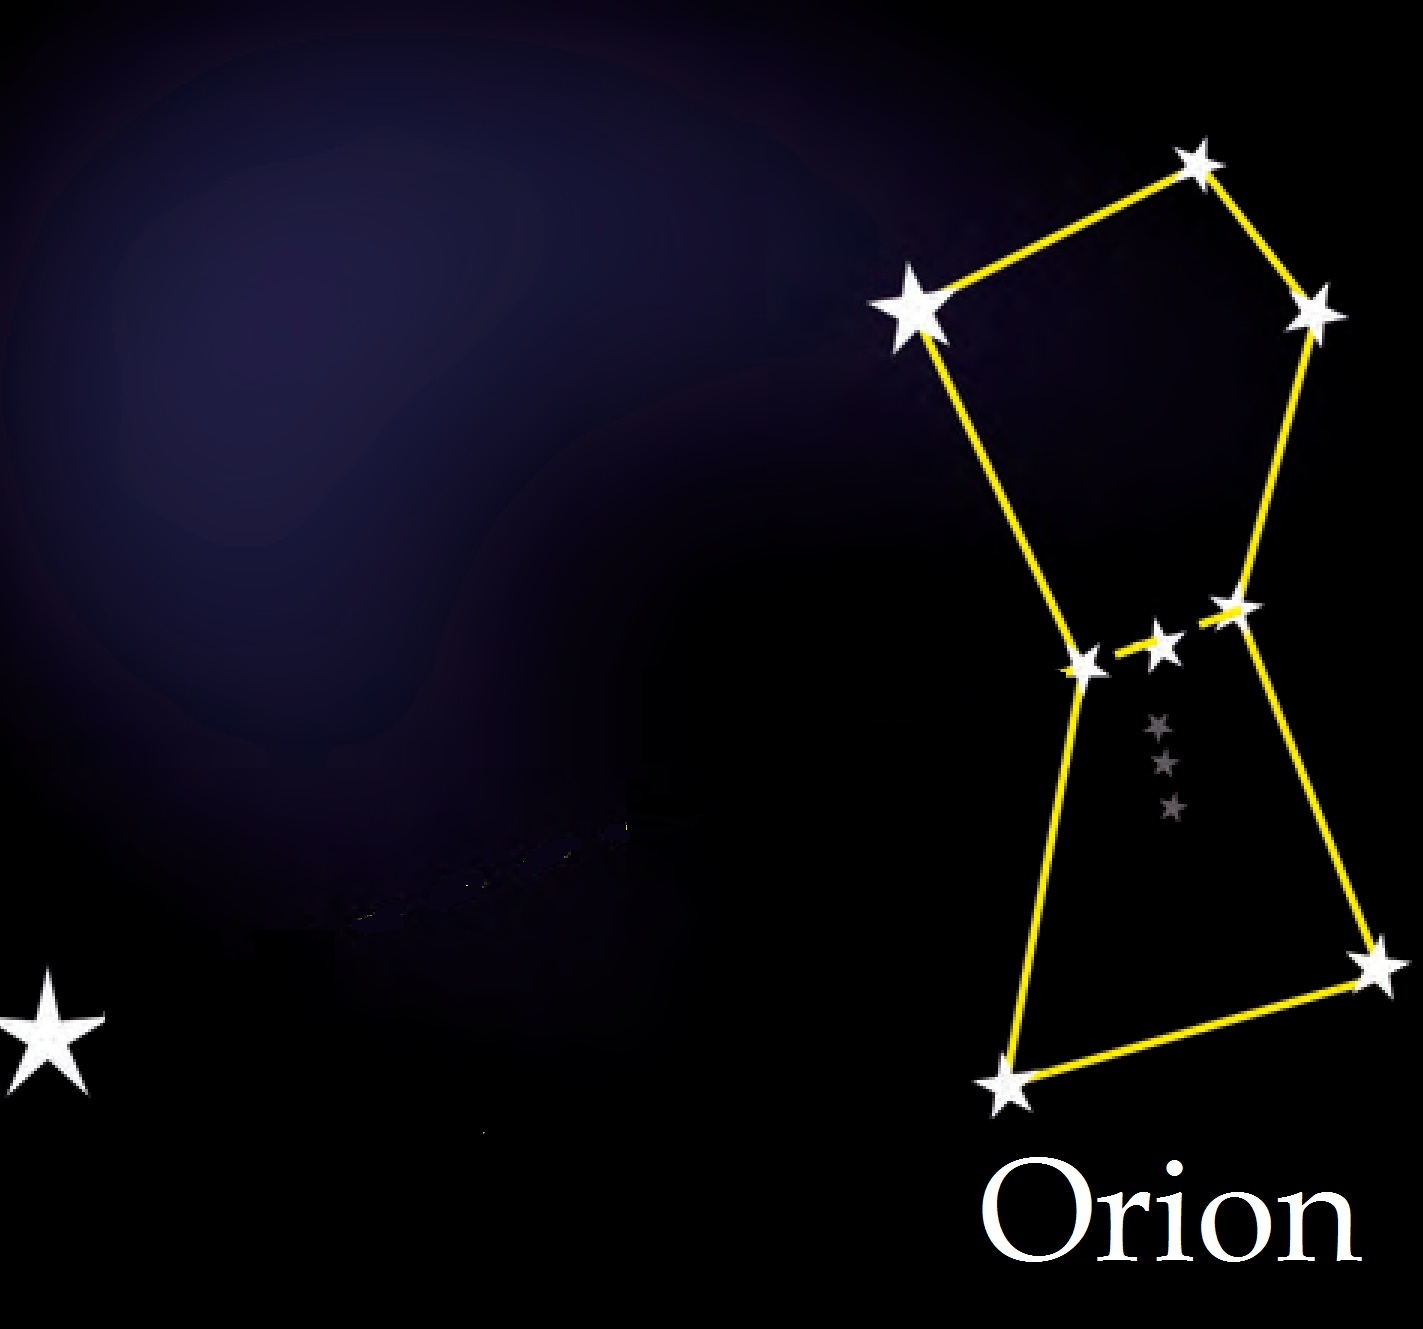 Finding Sirius from Orion - Step 1 - Finding Orion - Teachoo.jpg